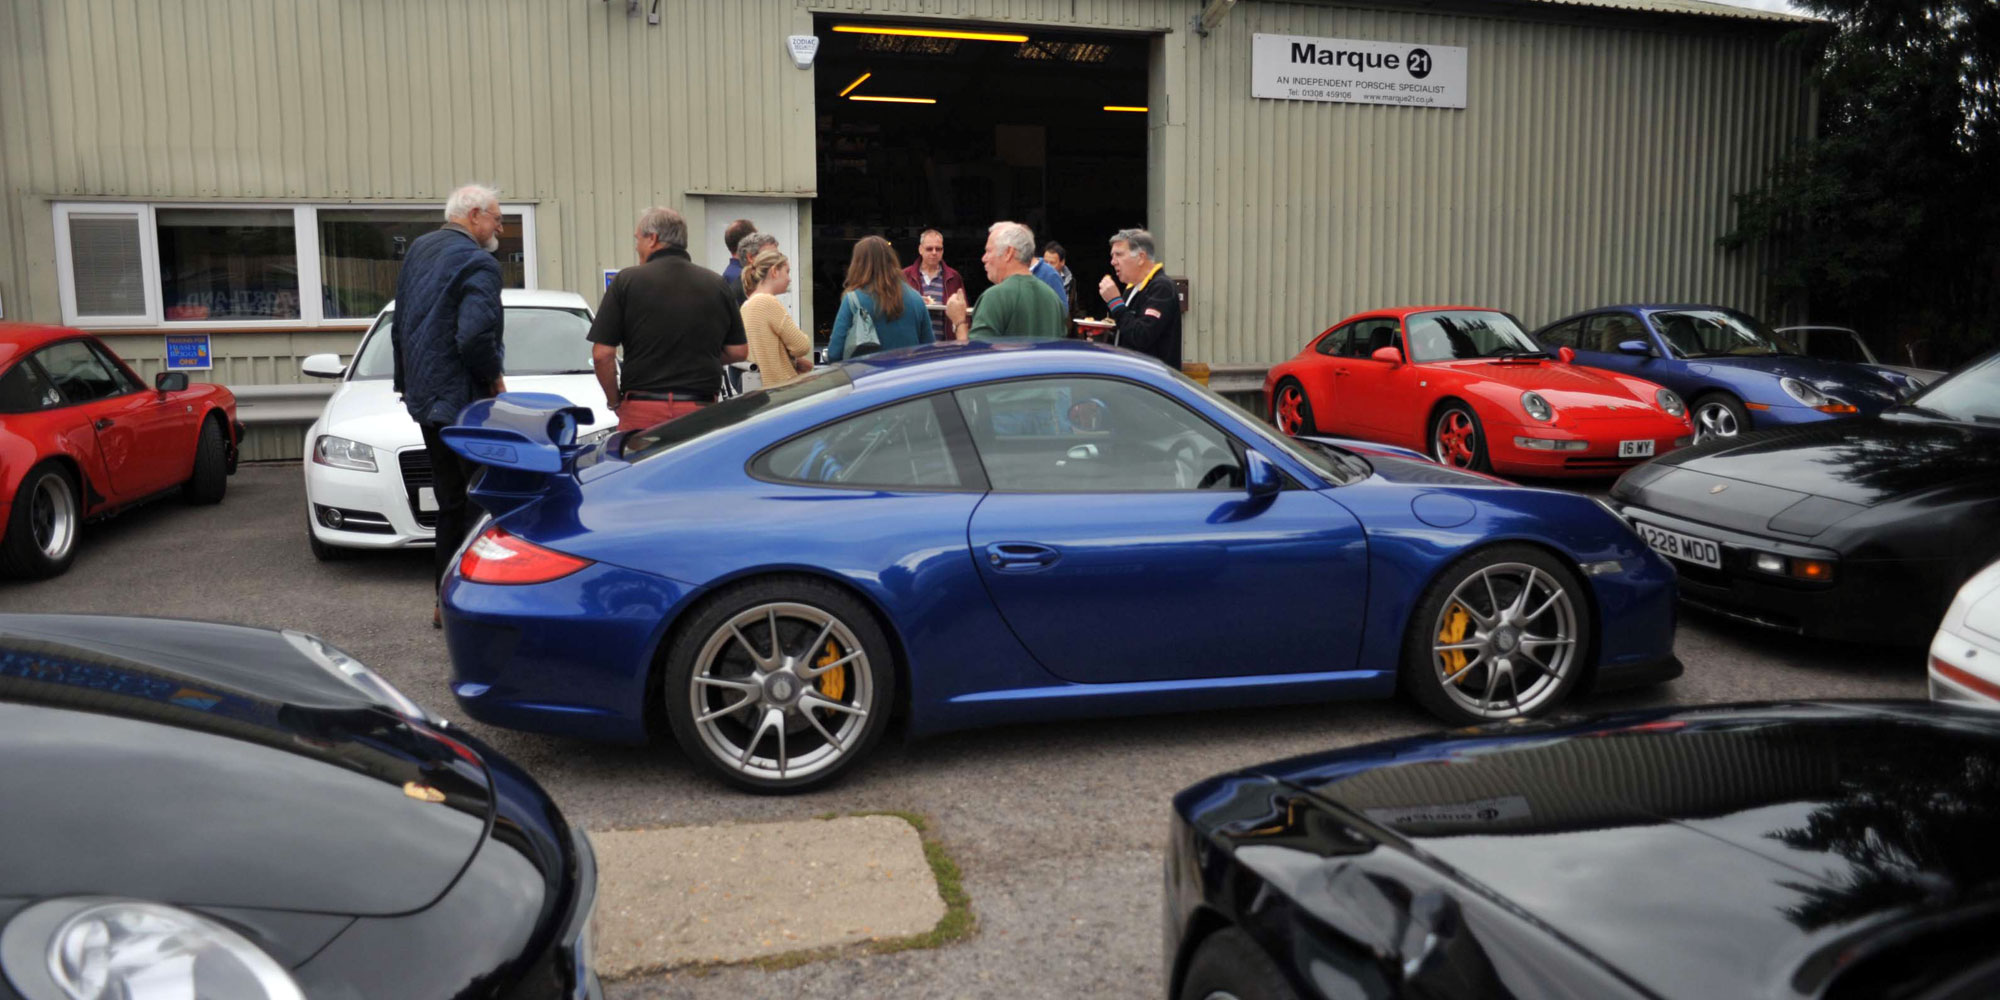 Porsche Club meet at Marque 21